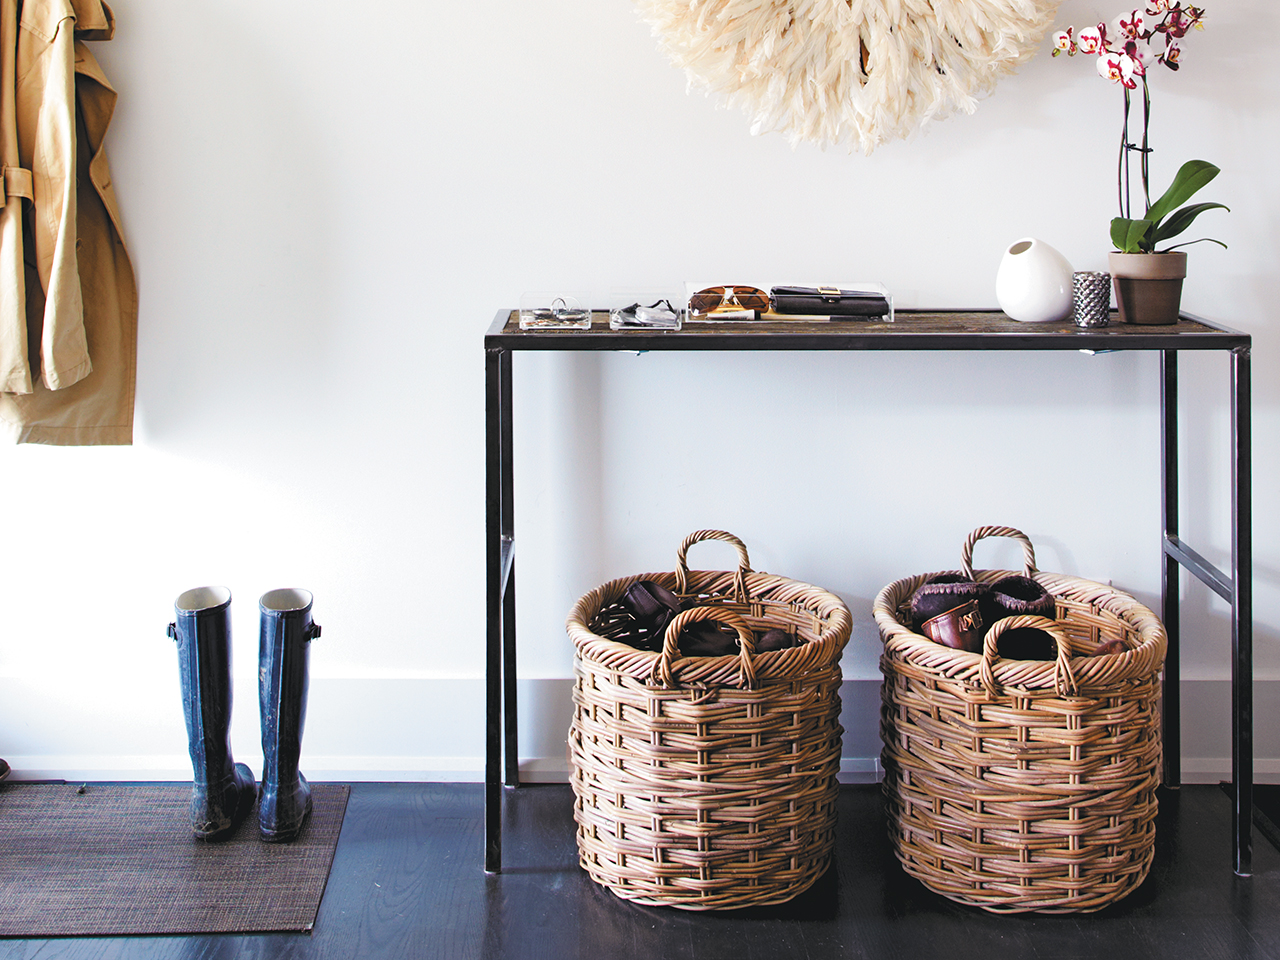 1. Always start by purging the things bringing clutter to your space